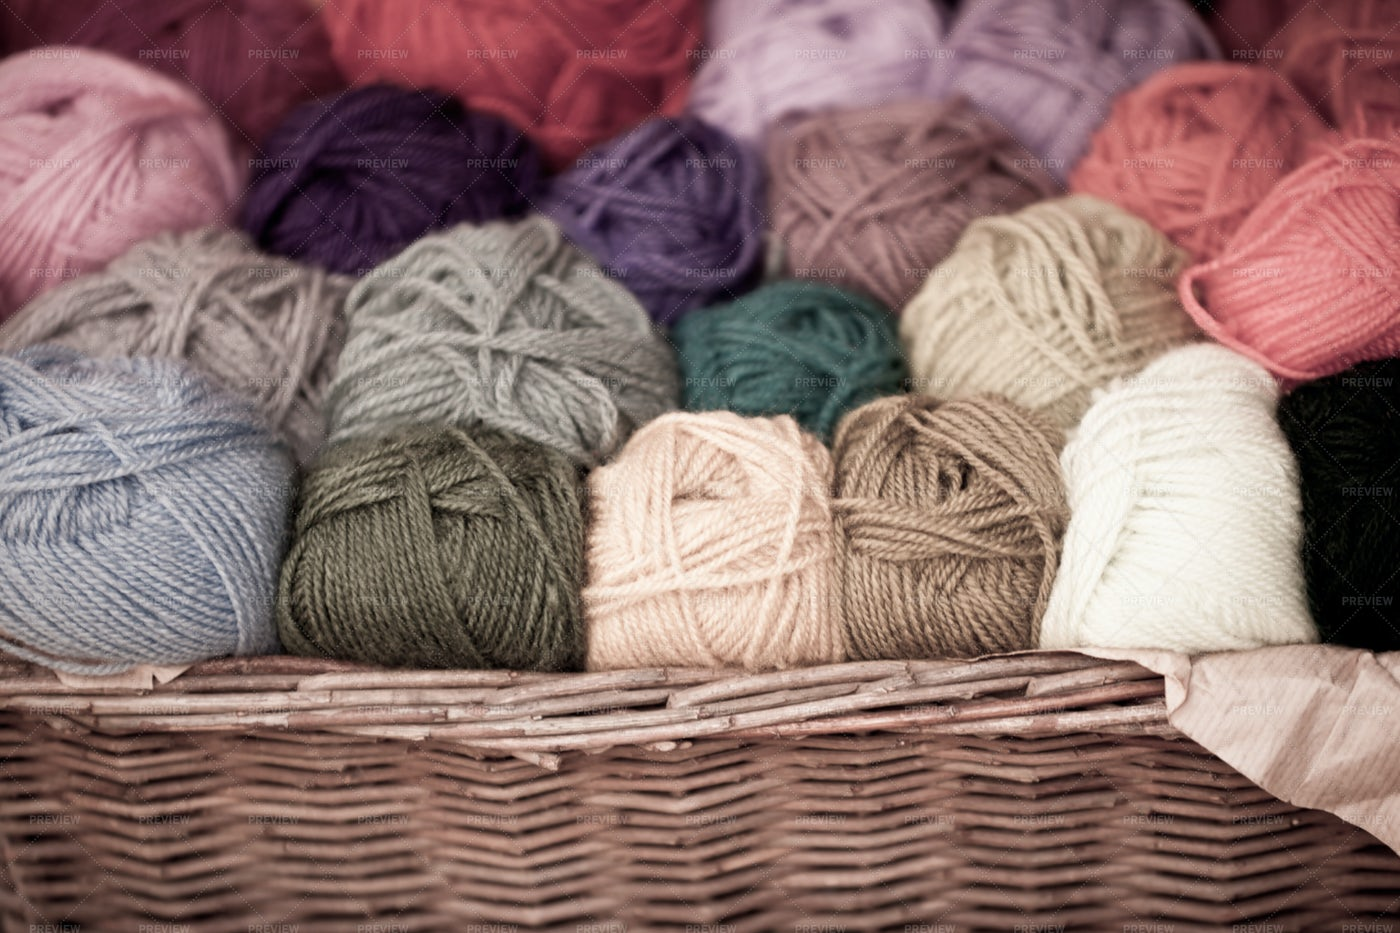 Wool Thread In A Basket: Stock Photos